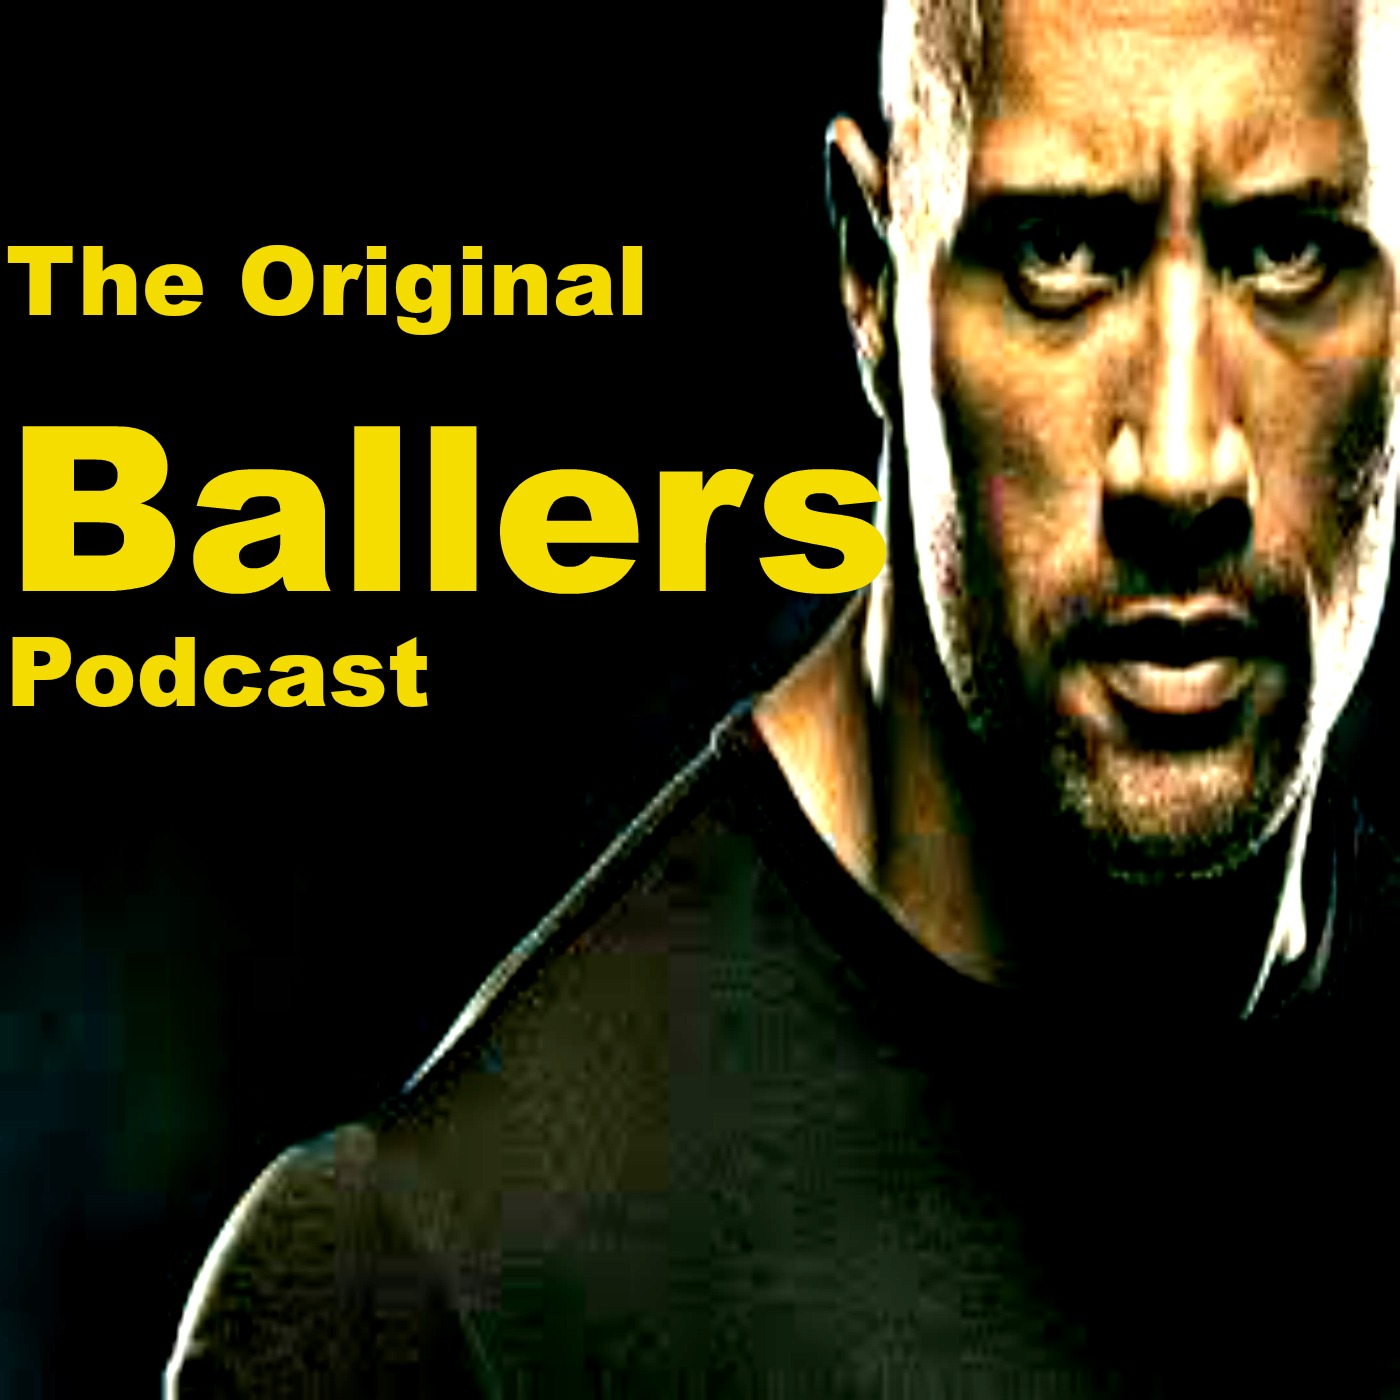 The Original Ballers Podcast show image